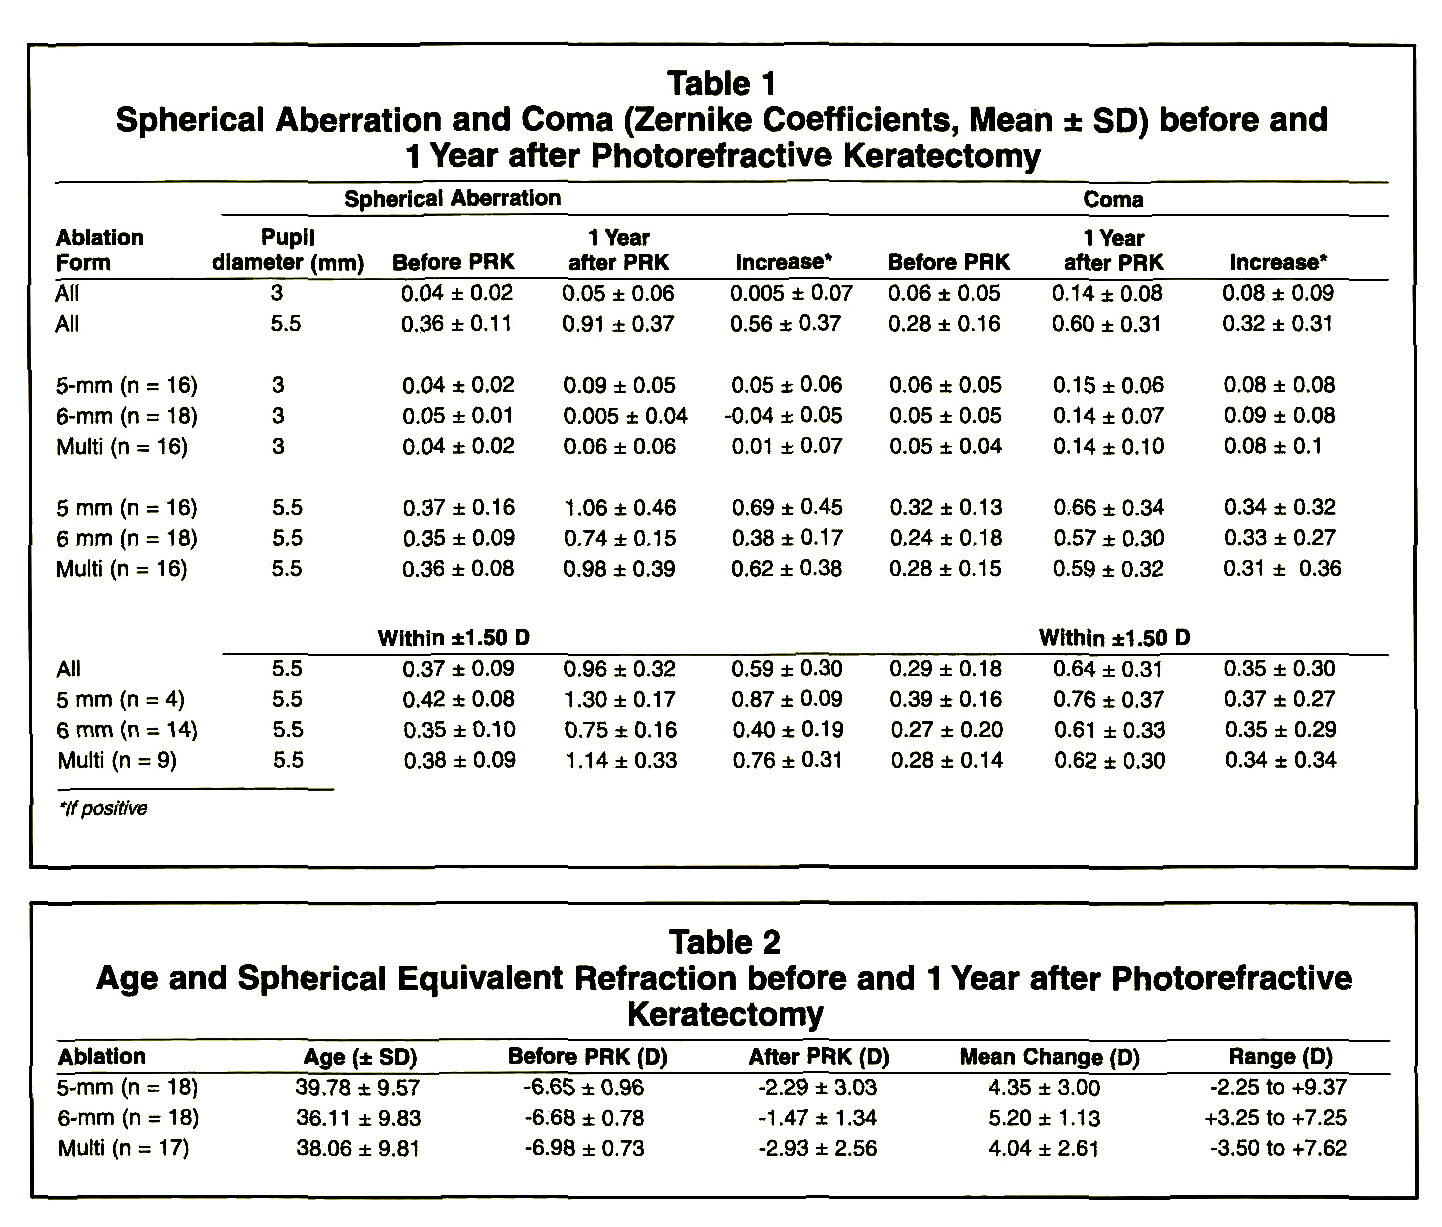 Table 1Spherical Aberration and Coma (Zernike Coefficients, Mean ± SD) before and 1 Year after Photorefractive KeratectomyTable 2Age and Spherical Equivalent Refraction before and 1 Year after Photorefractive Keratectomy